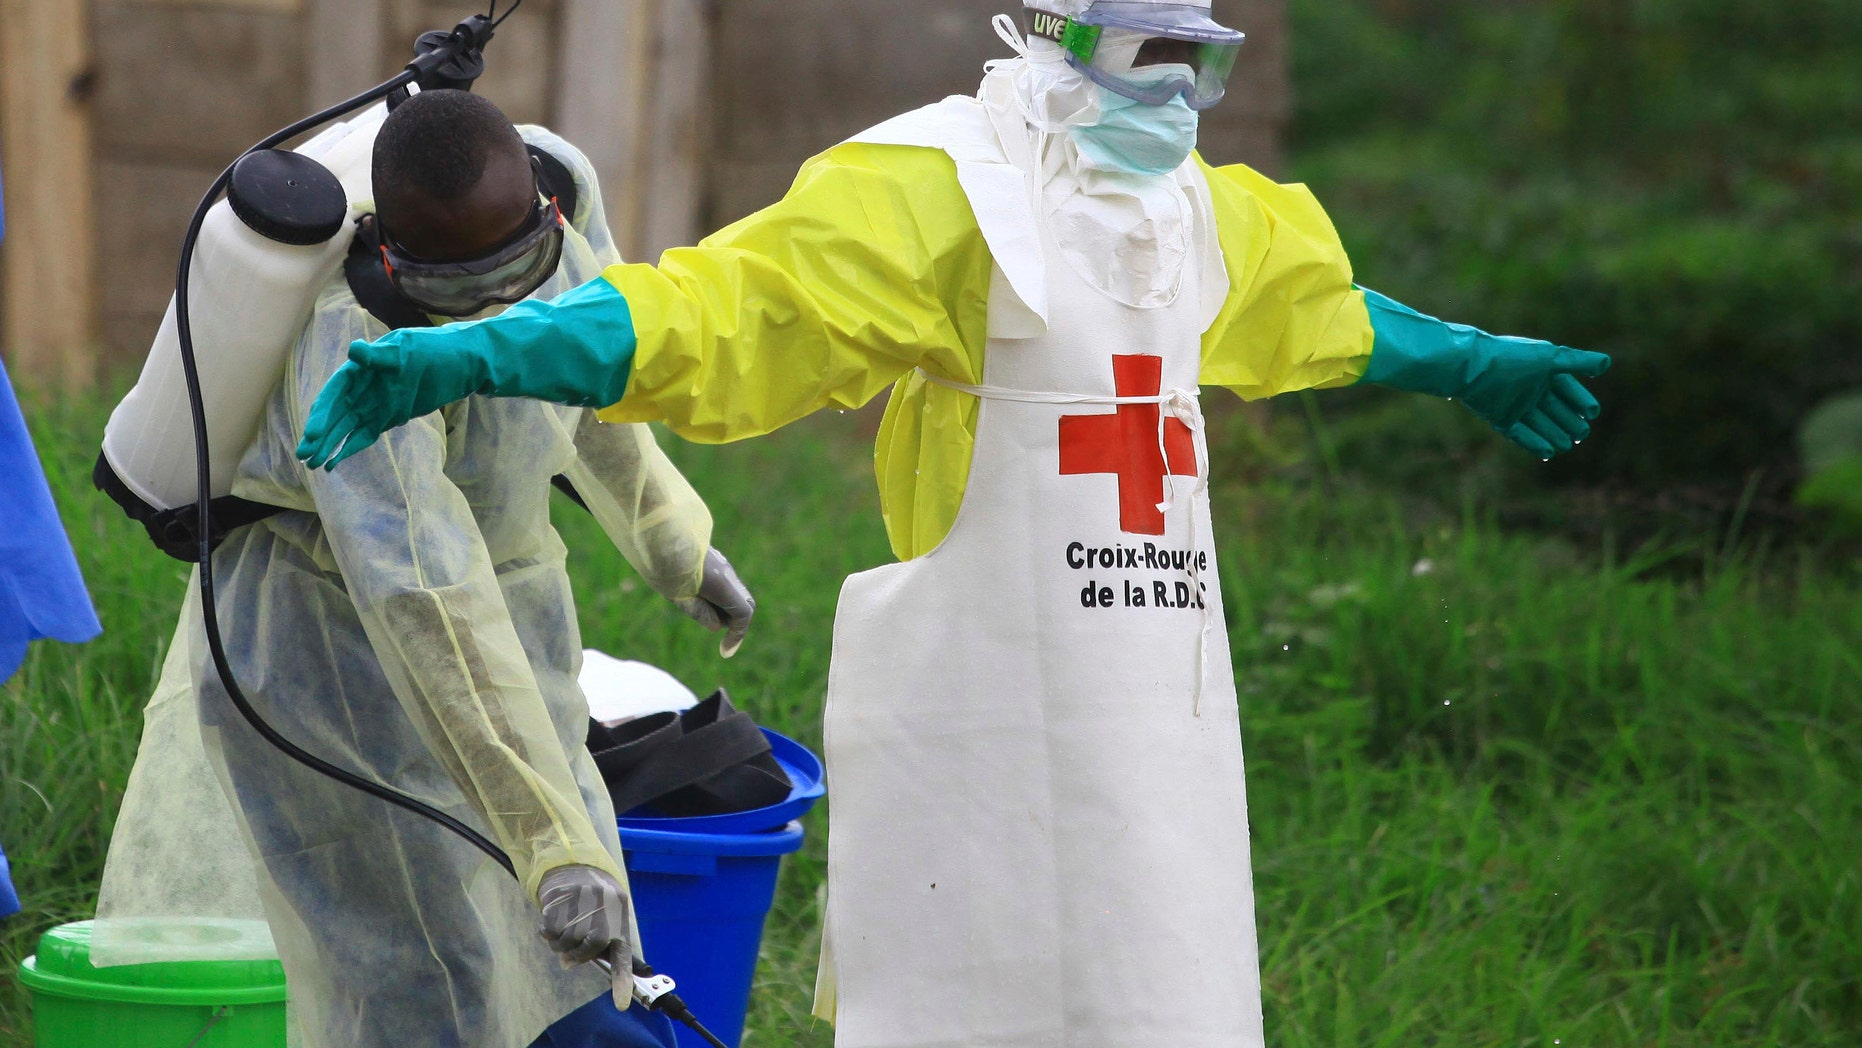 Westlake Legal Group congo_ebola_ap Congo's Ebola outbreak might be declared global emergency GENEVA fox-news/health/infectious-disease/outbreaks fox-news/health/infectious-disease/ebola fnc/health fnc Associated Press article 578f7c6f-8aee-53b9-be49-440616cf4e37